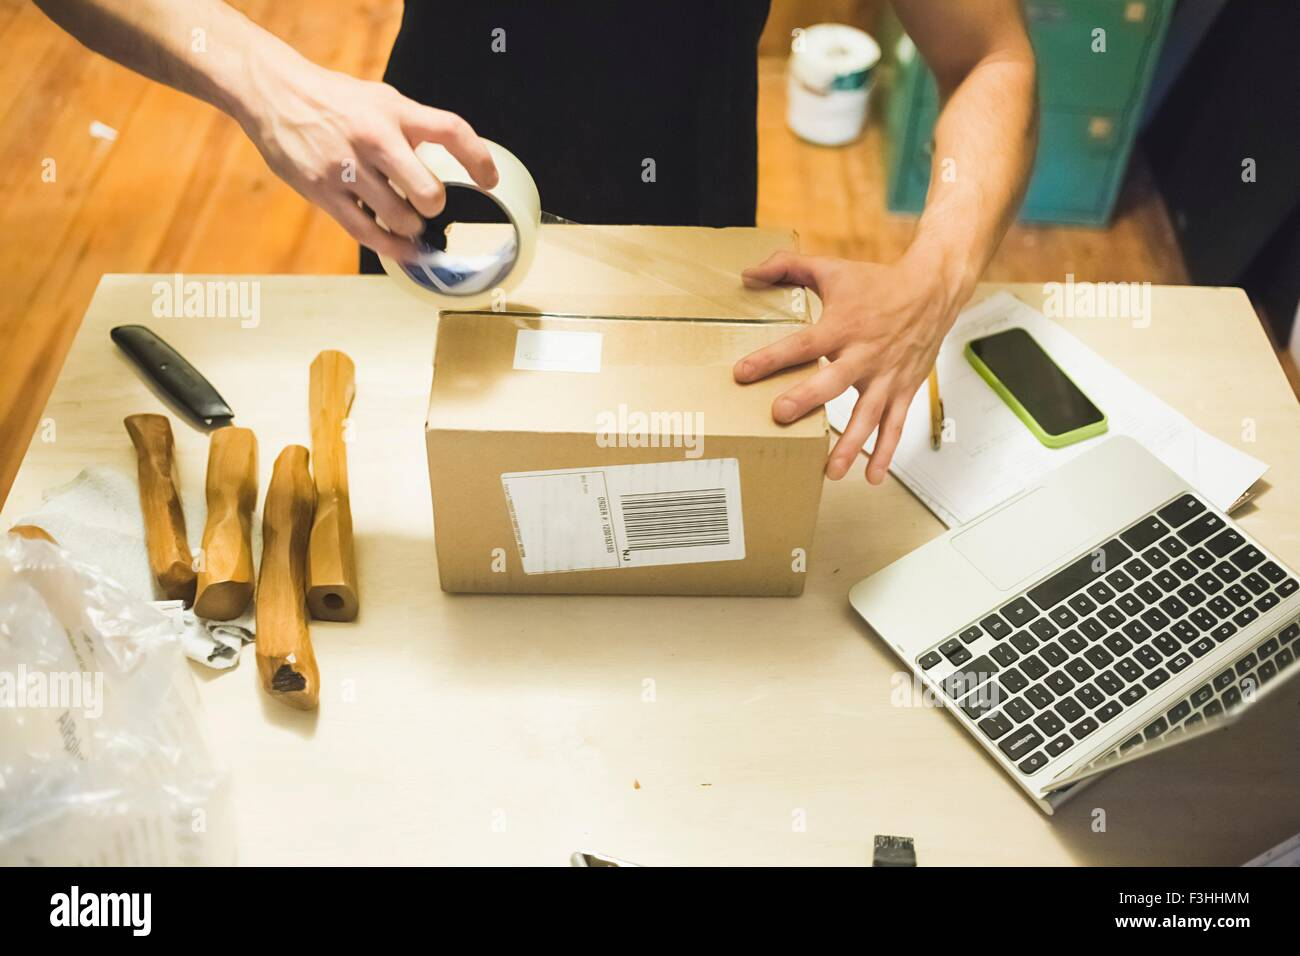 High angle view of young mans hands using sticking tape to prepare package for delivery - Stock Image